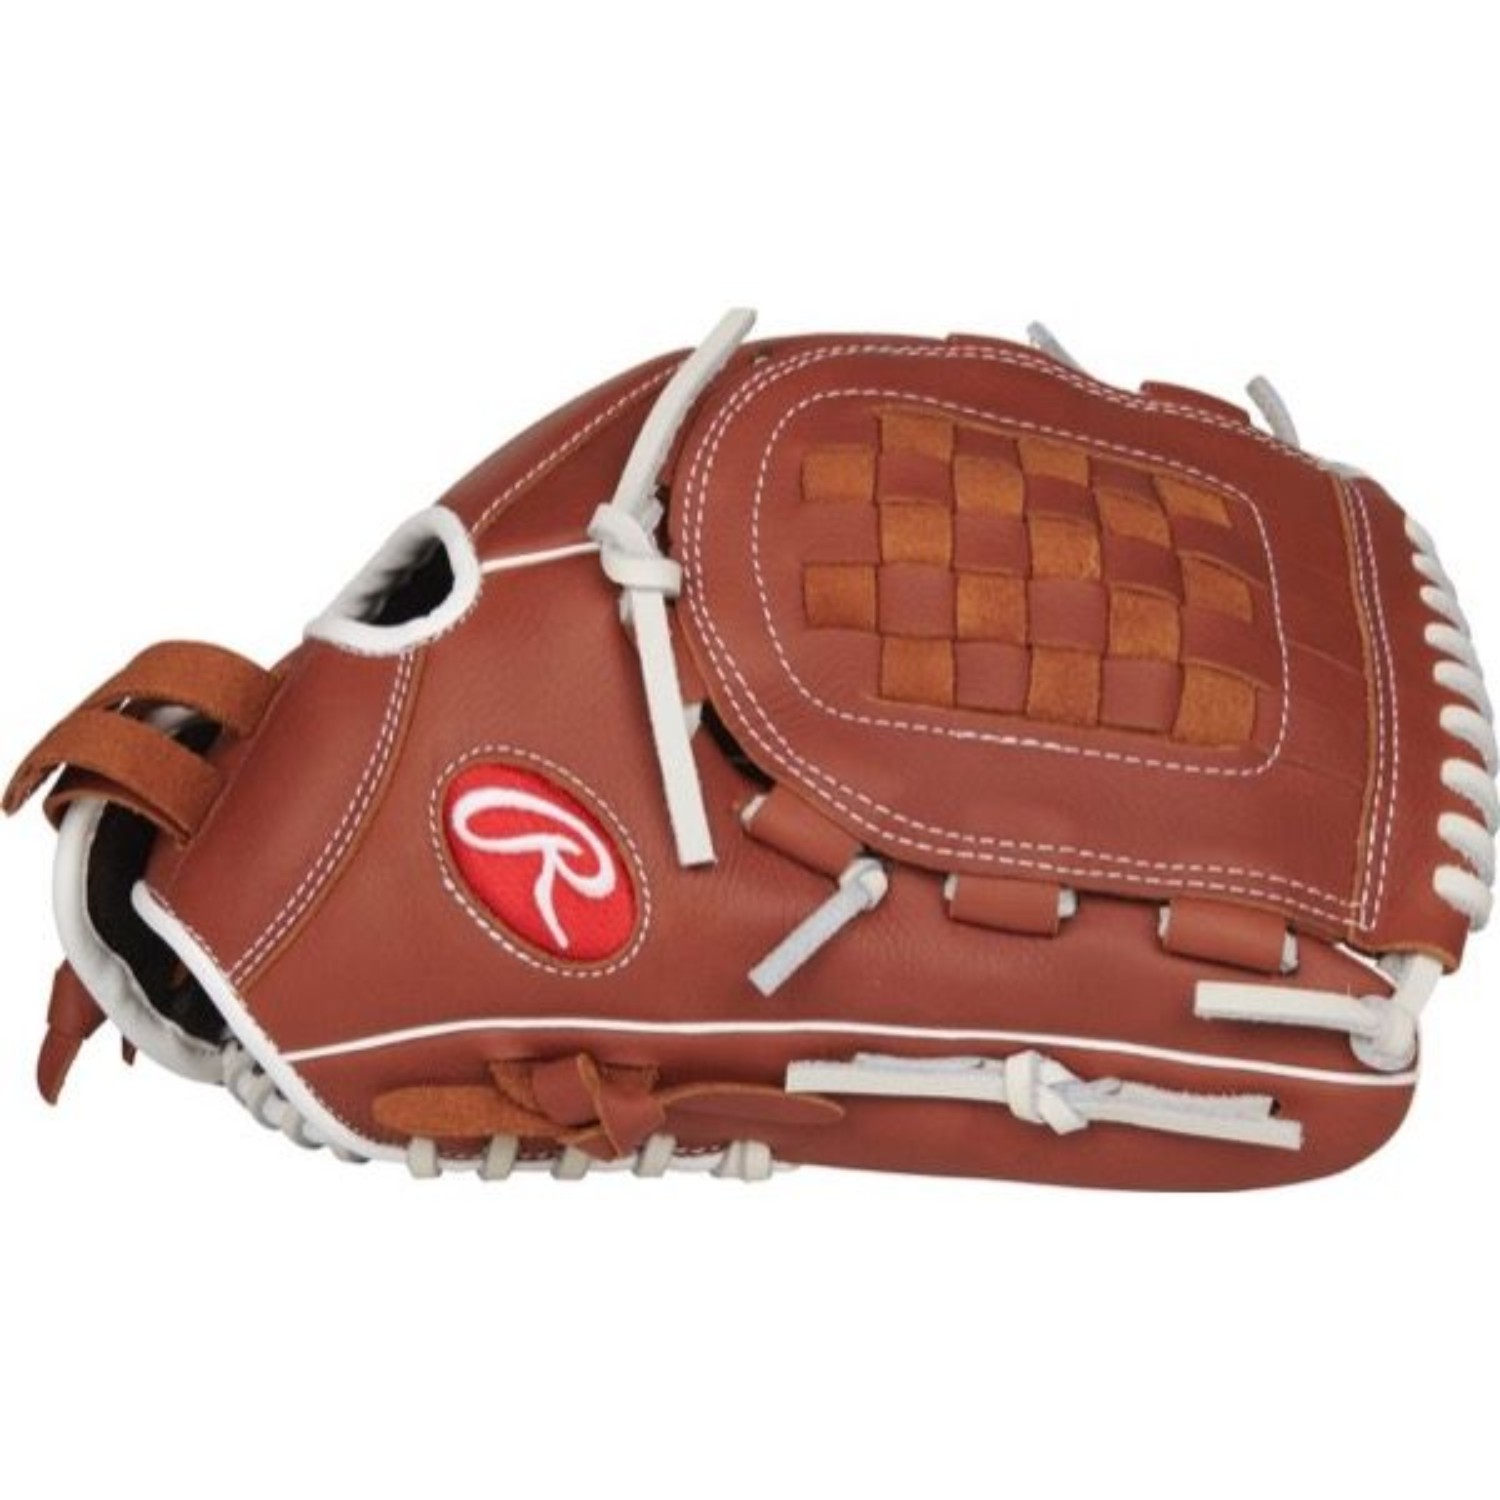 "Rawlings 12"" R9 Series Softball Glove, Right Hand Throw"